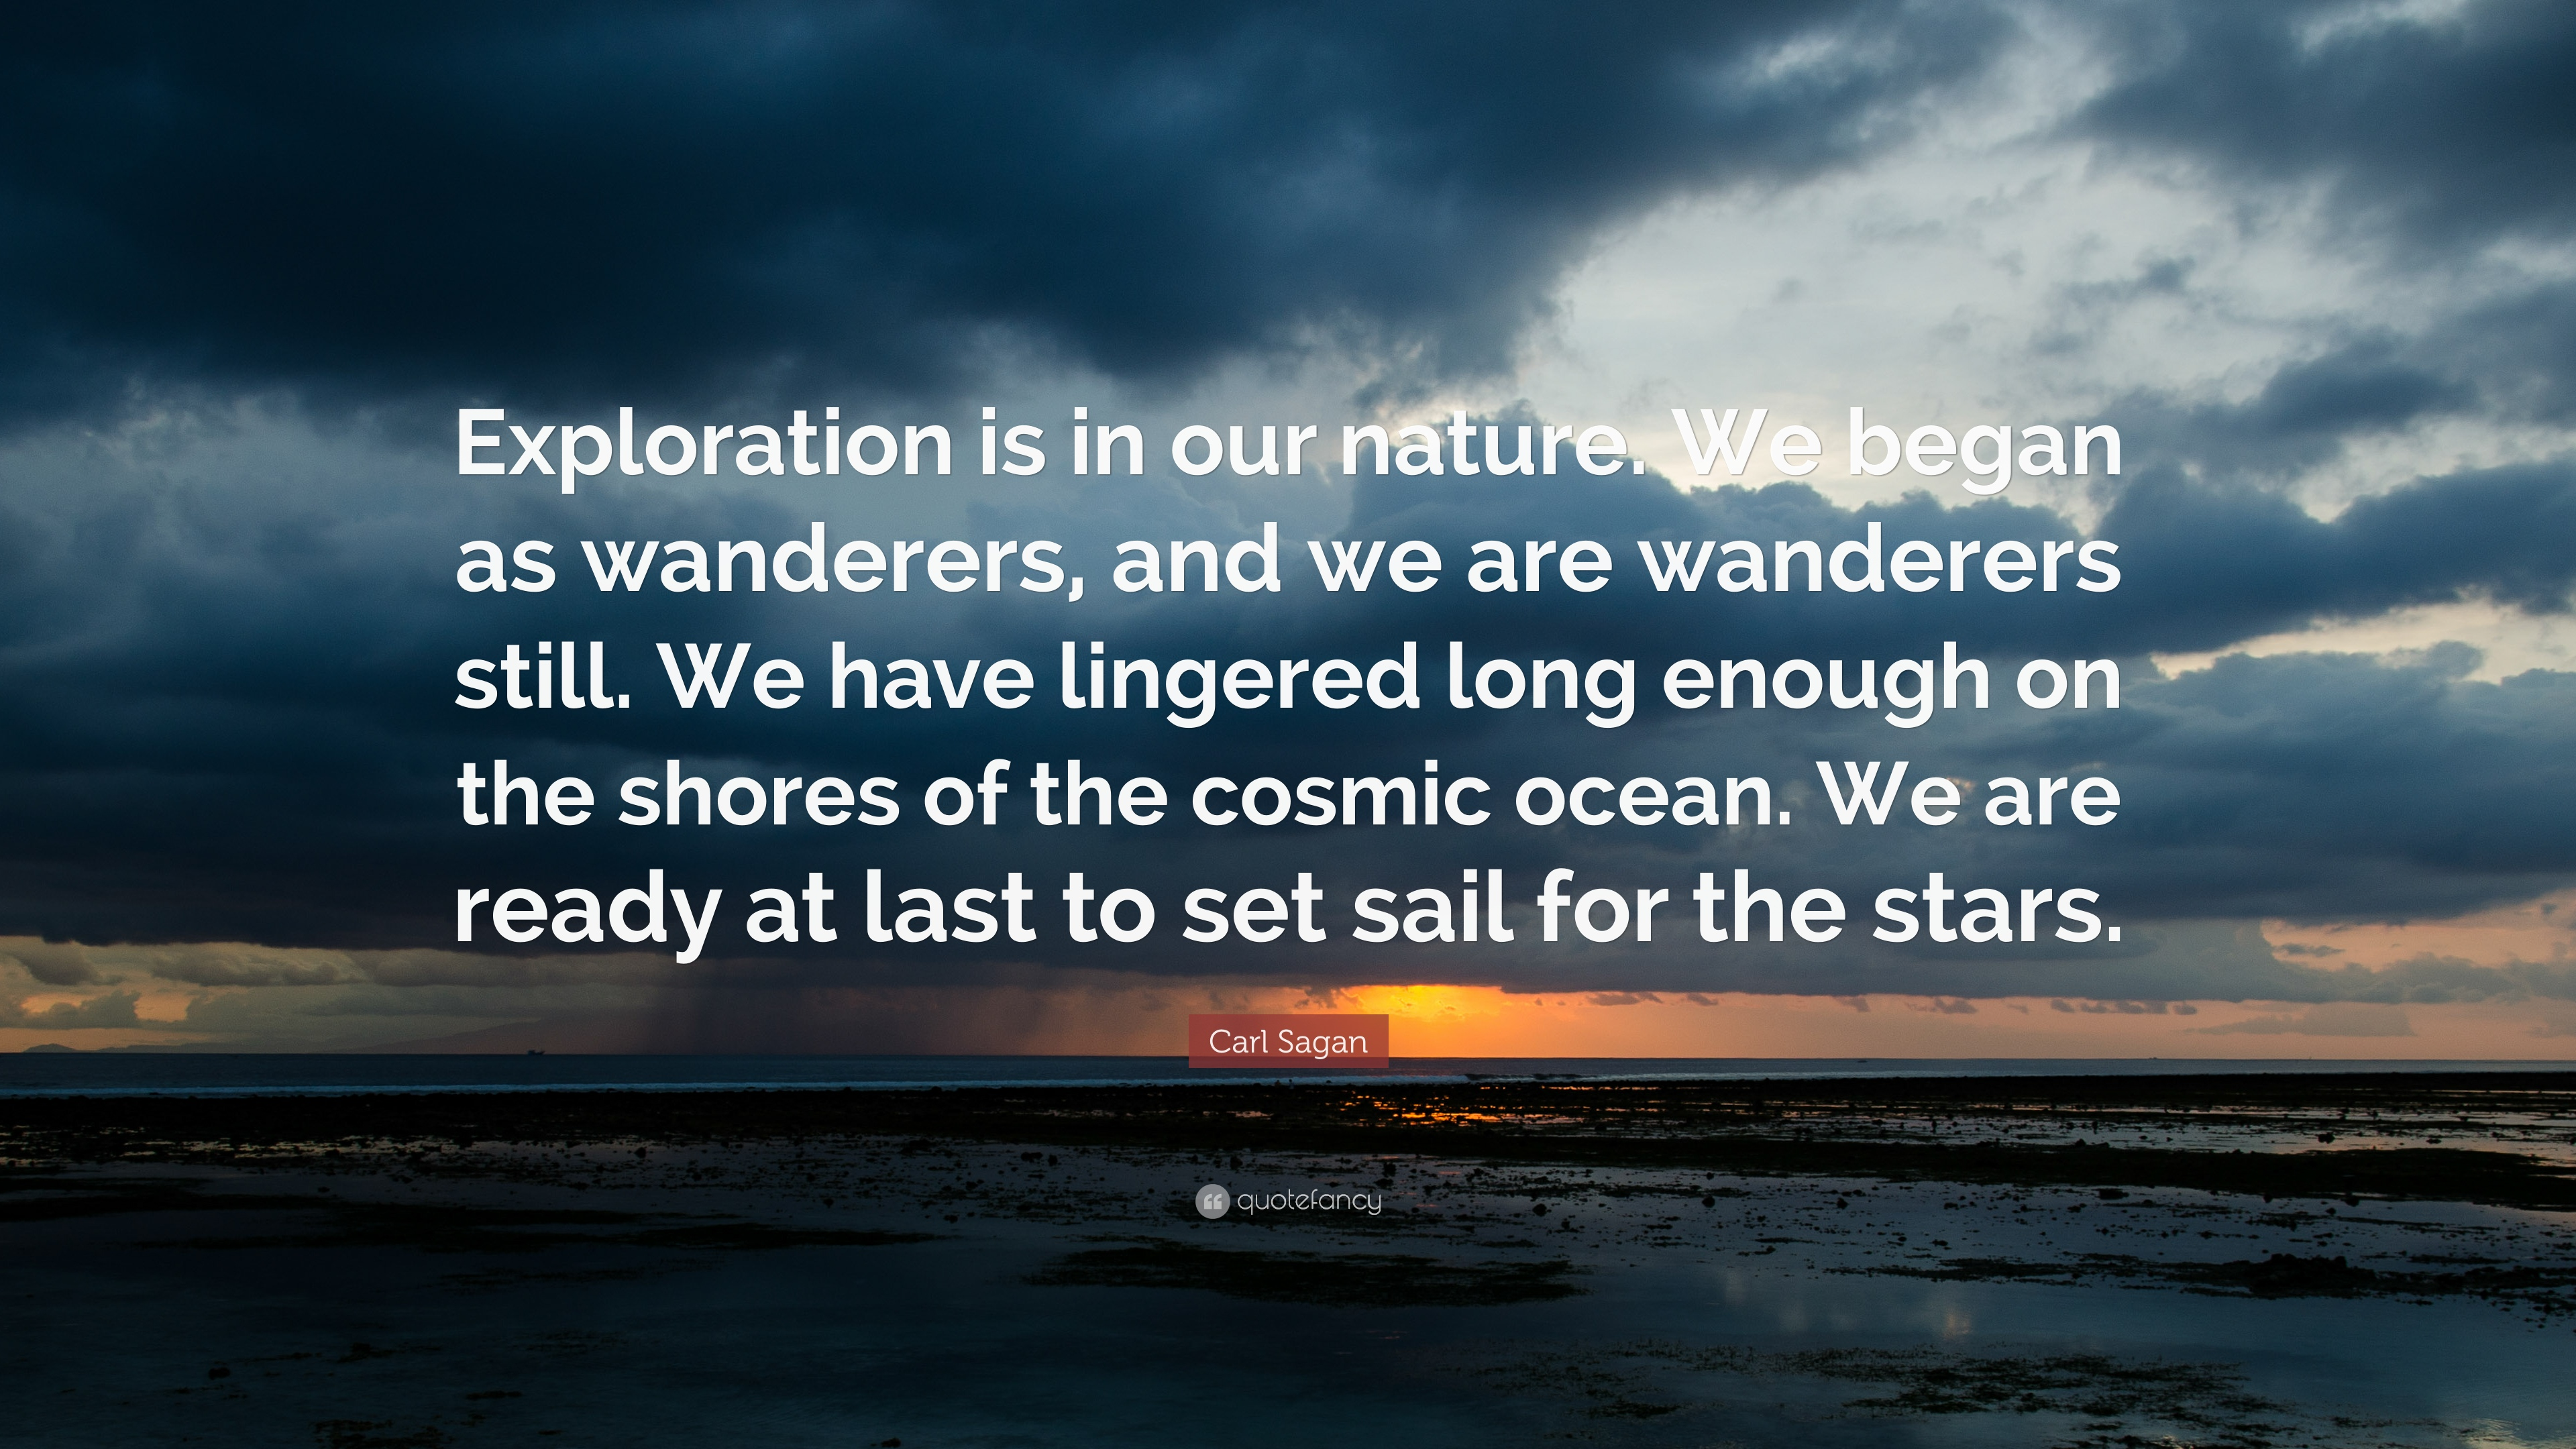 """Exploration Quotes Sayings Pictures And Images: Carl Sagan Quote: """"Exploration Is In Our Nature. We Began"""